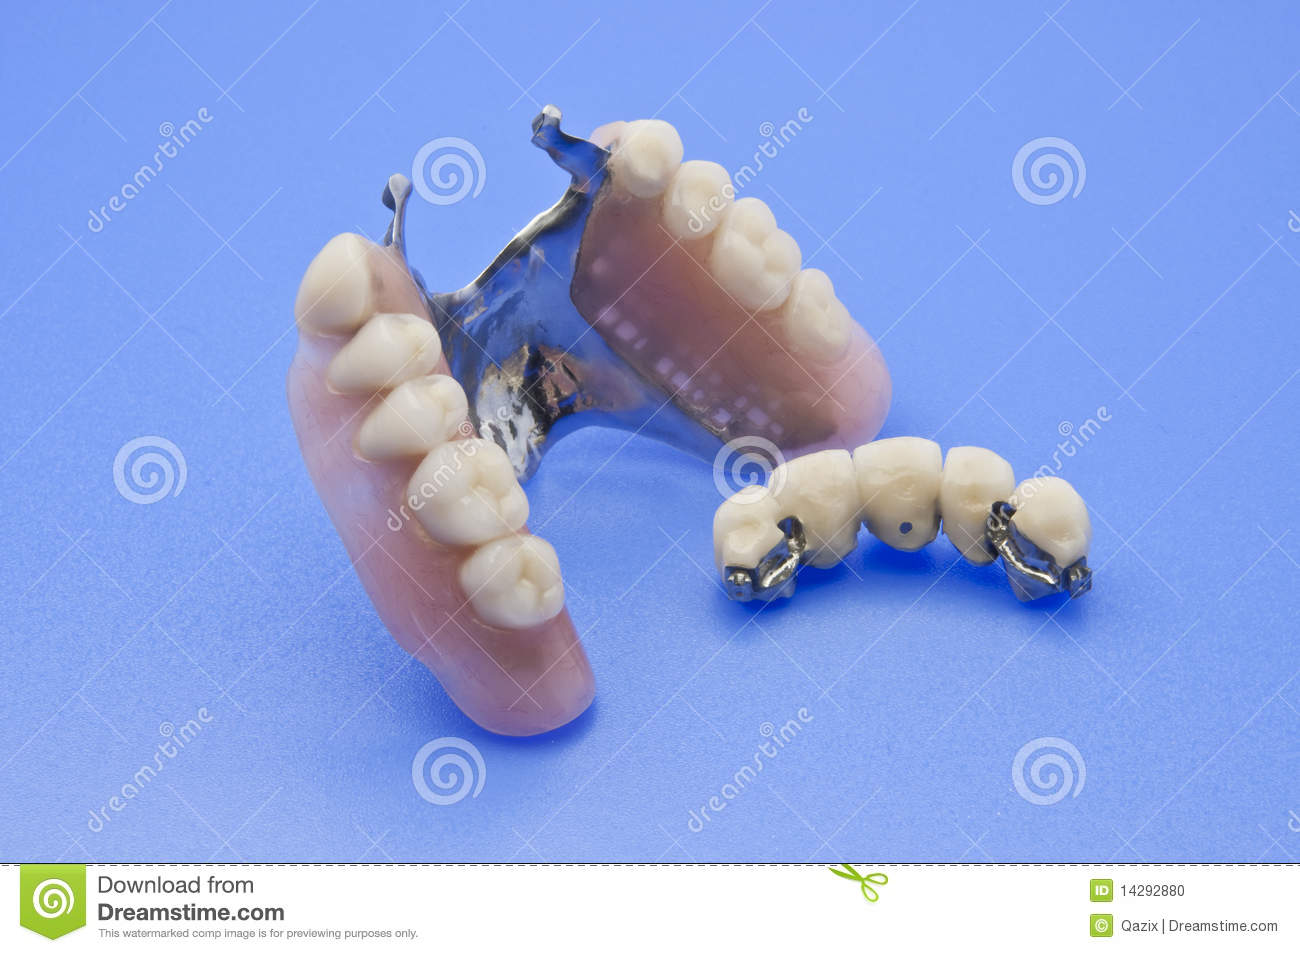 prothesis with